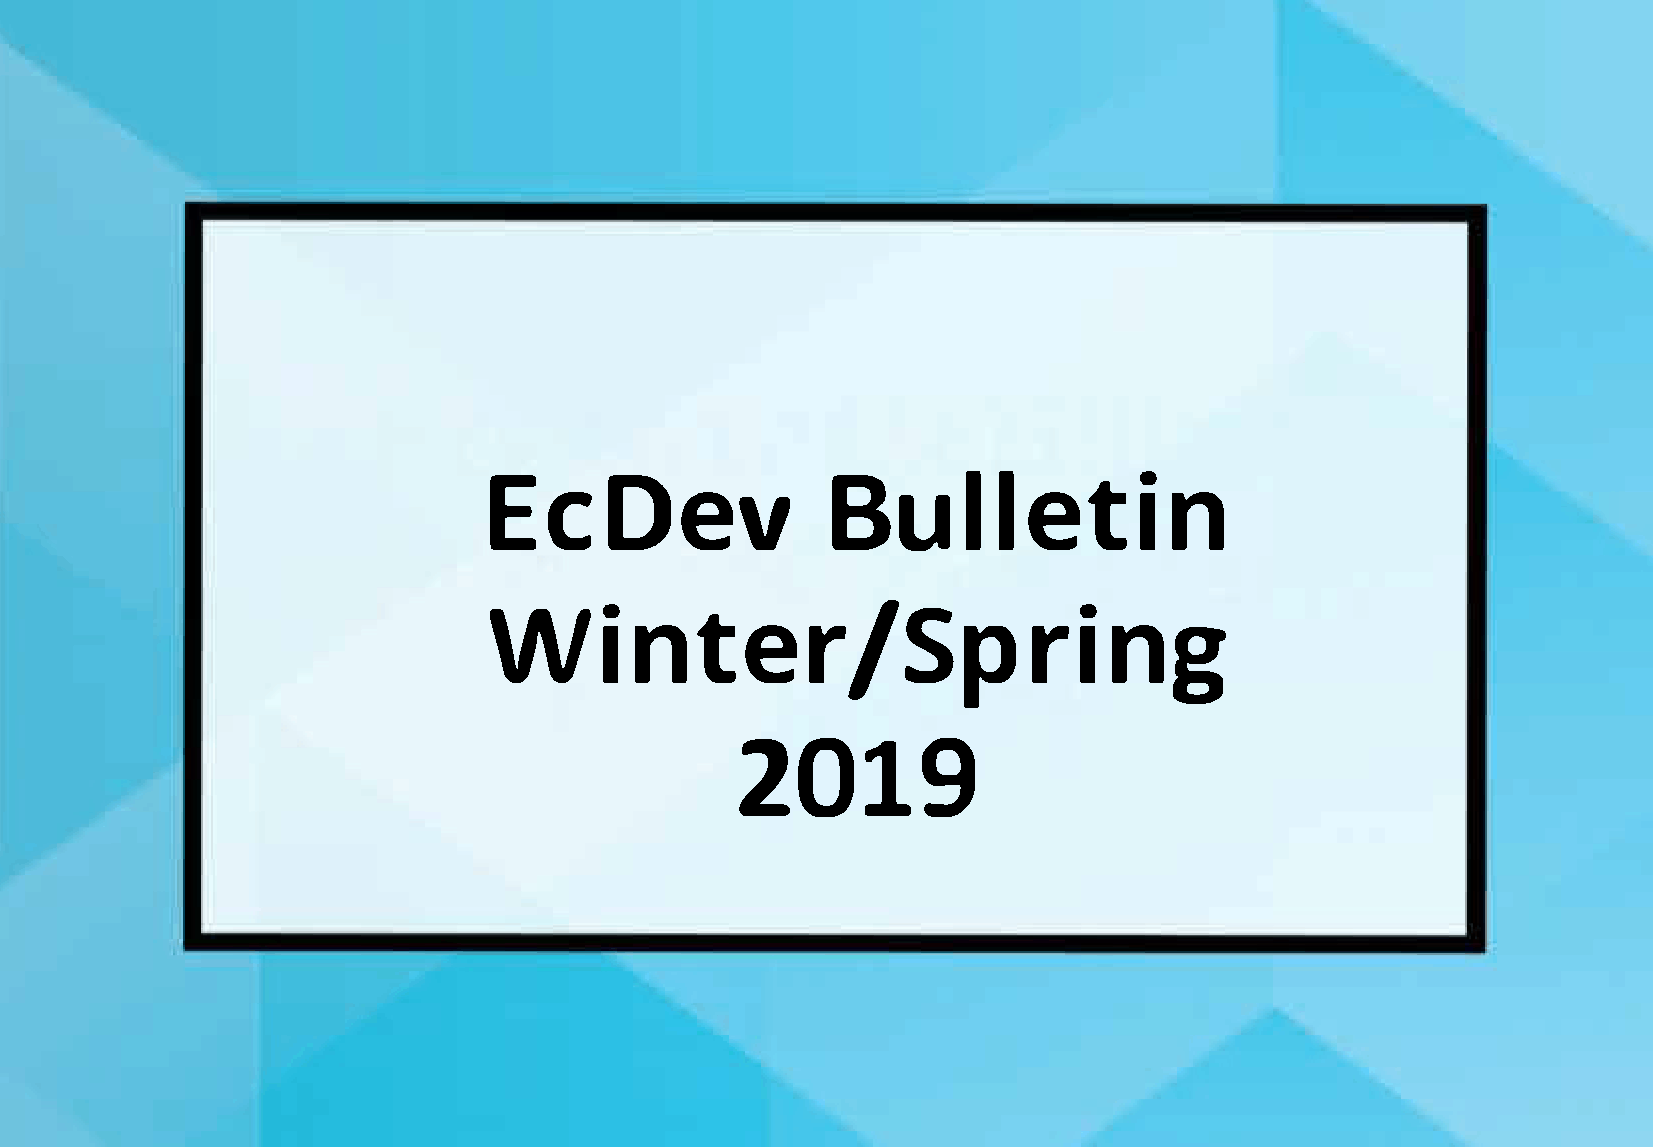 EcDev Bulletin Winter/Spring 2019